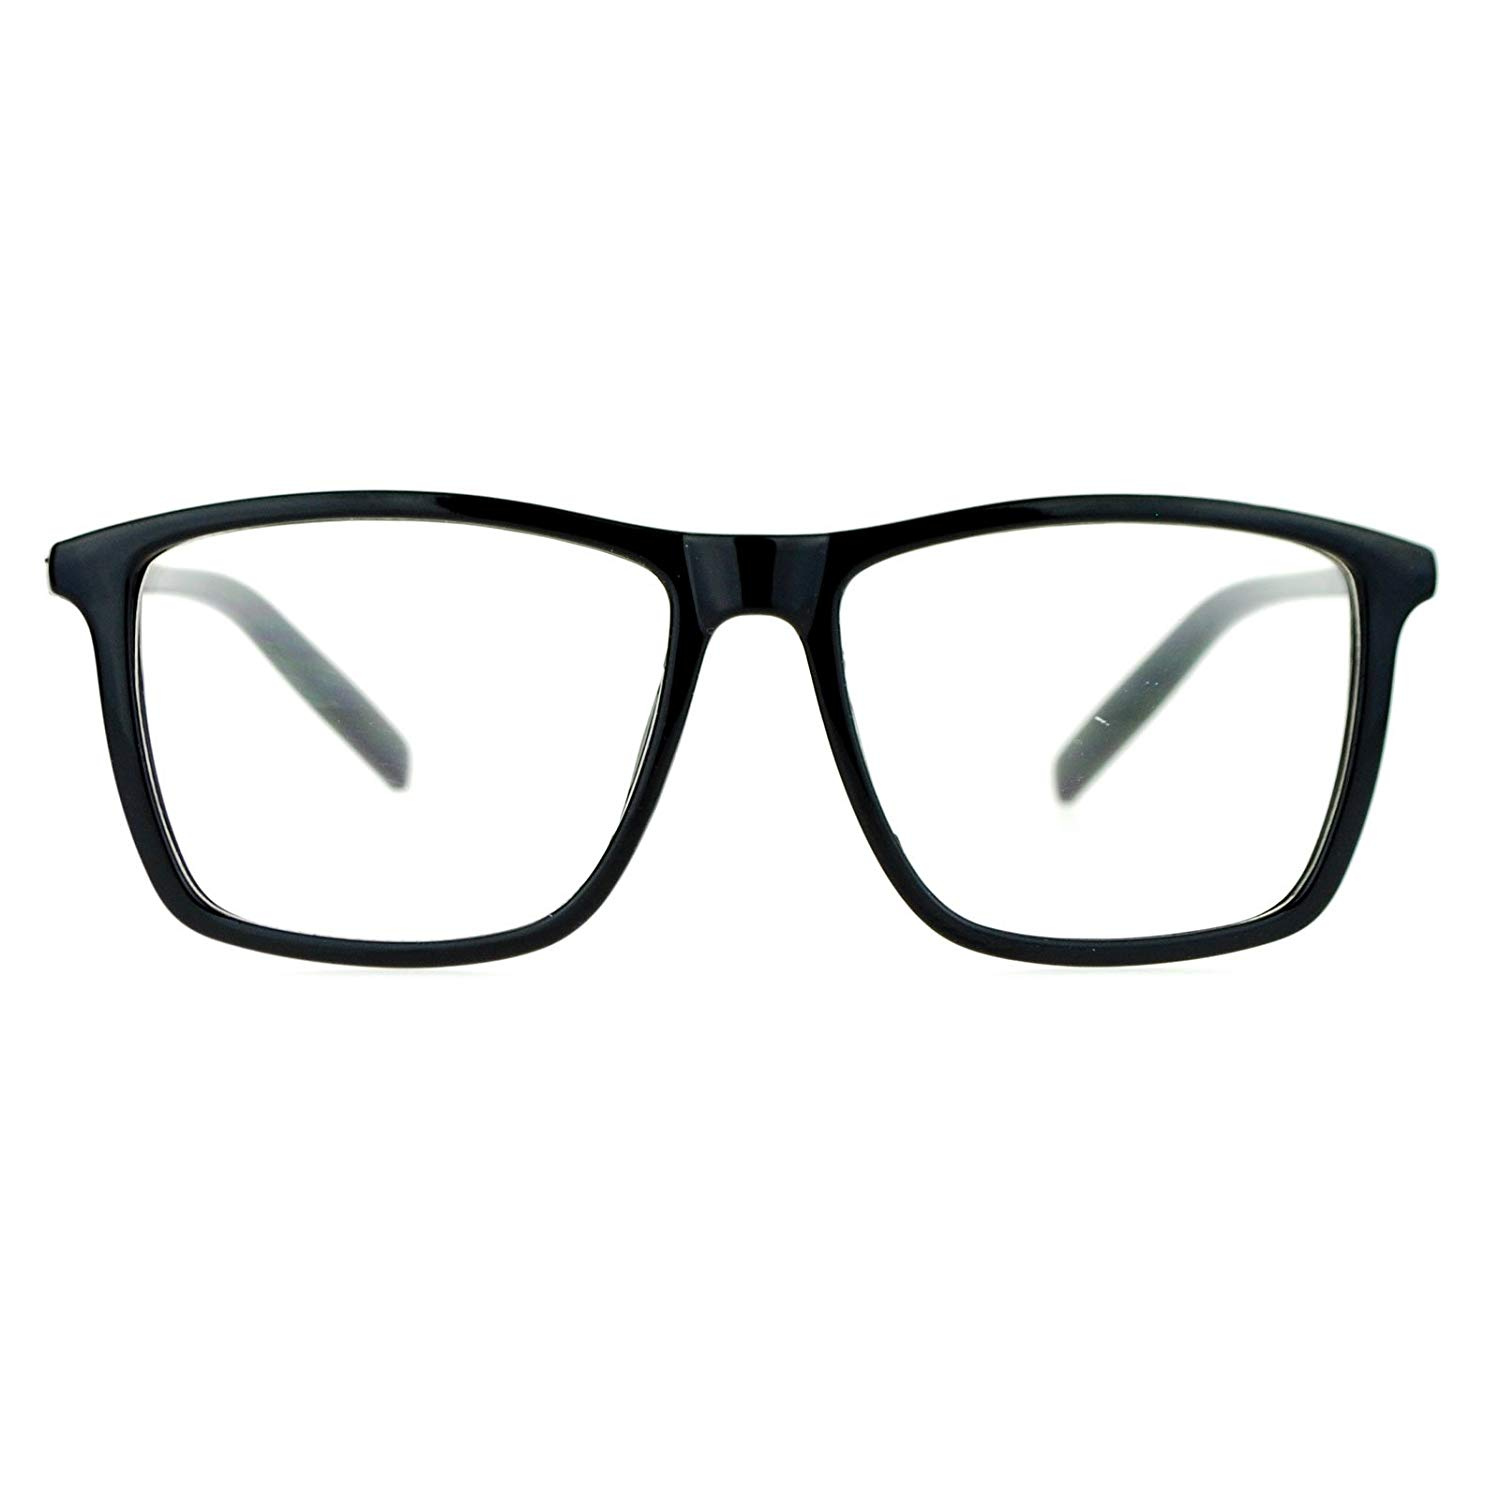 d61f52a18dc Get Quotations · SA106 Black Large Thin Plastic Horn Rim Clear Lens Eye  Glasses Frame